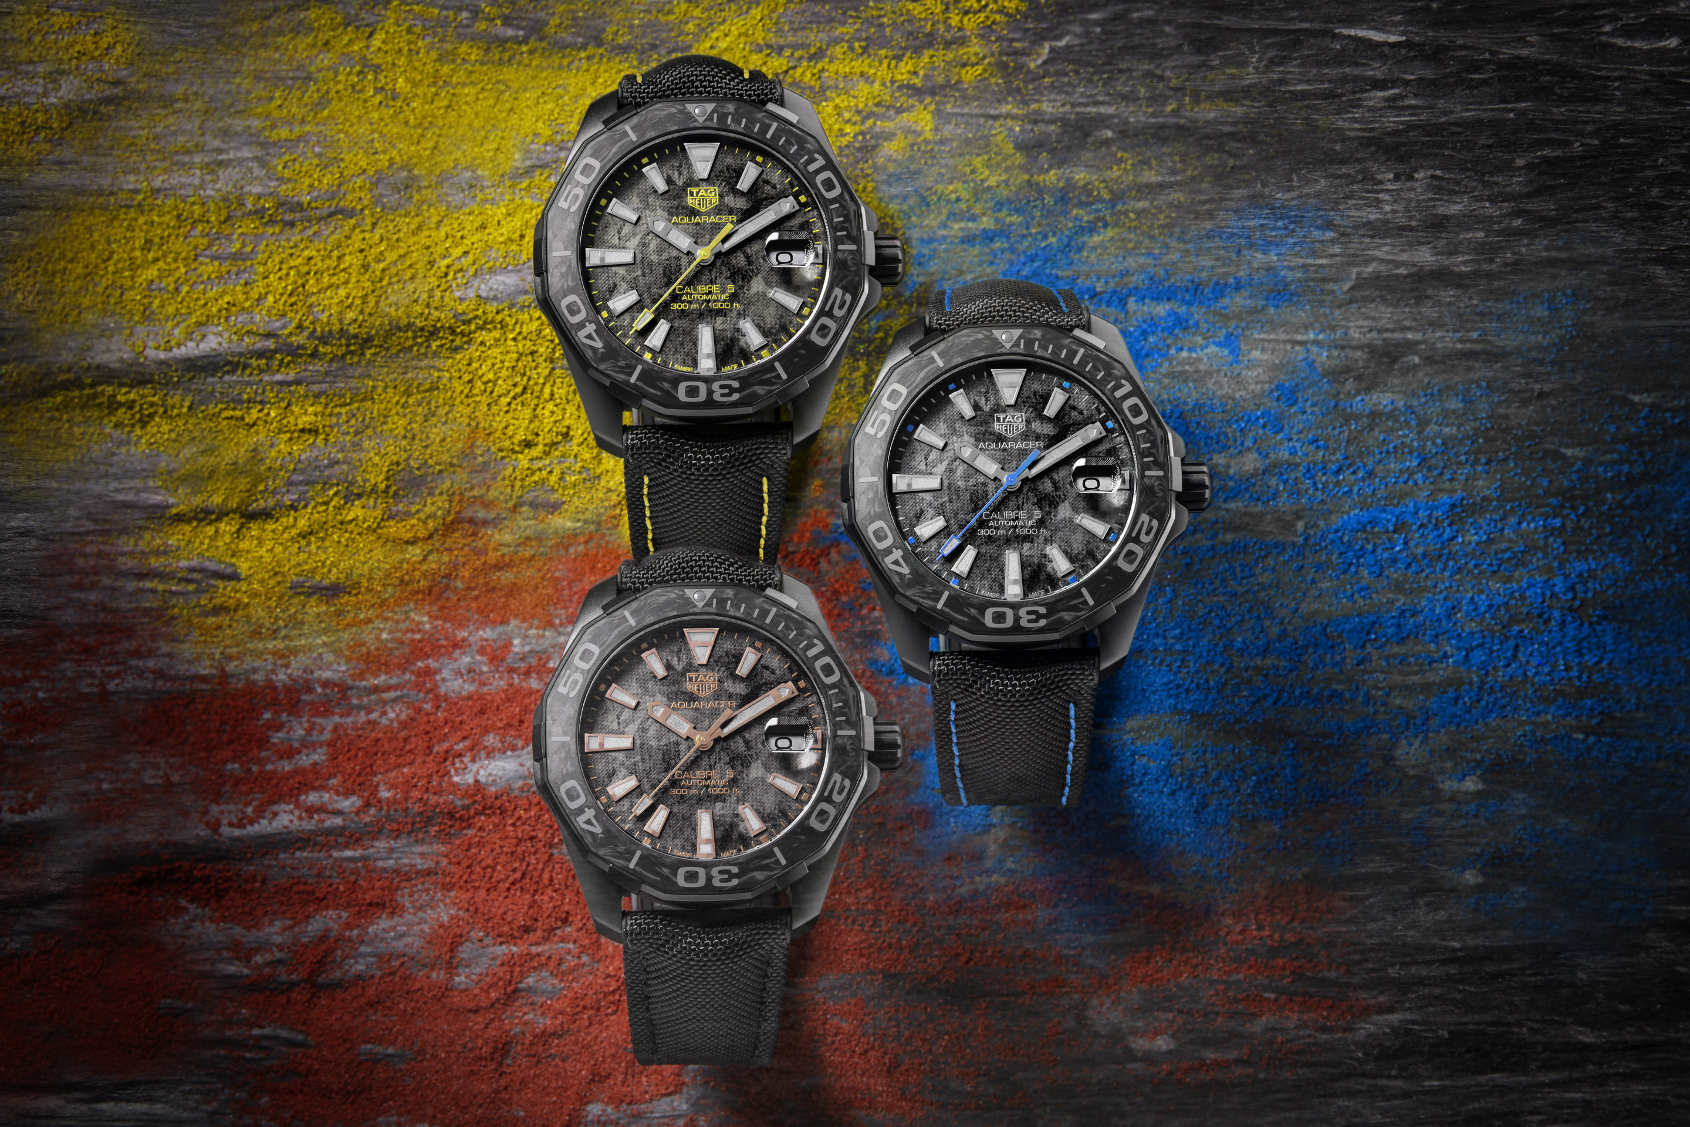 INTRODUCING: Altered carbon – the TAG Heuer Aquaracer 300M Carbon Collection